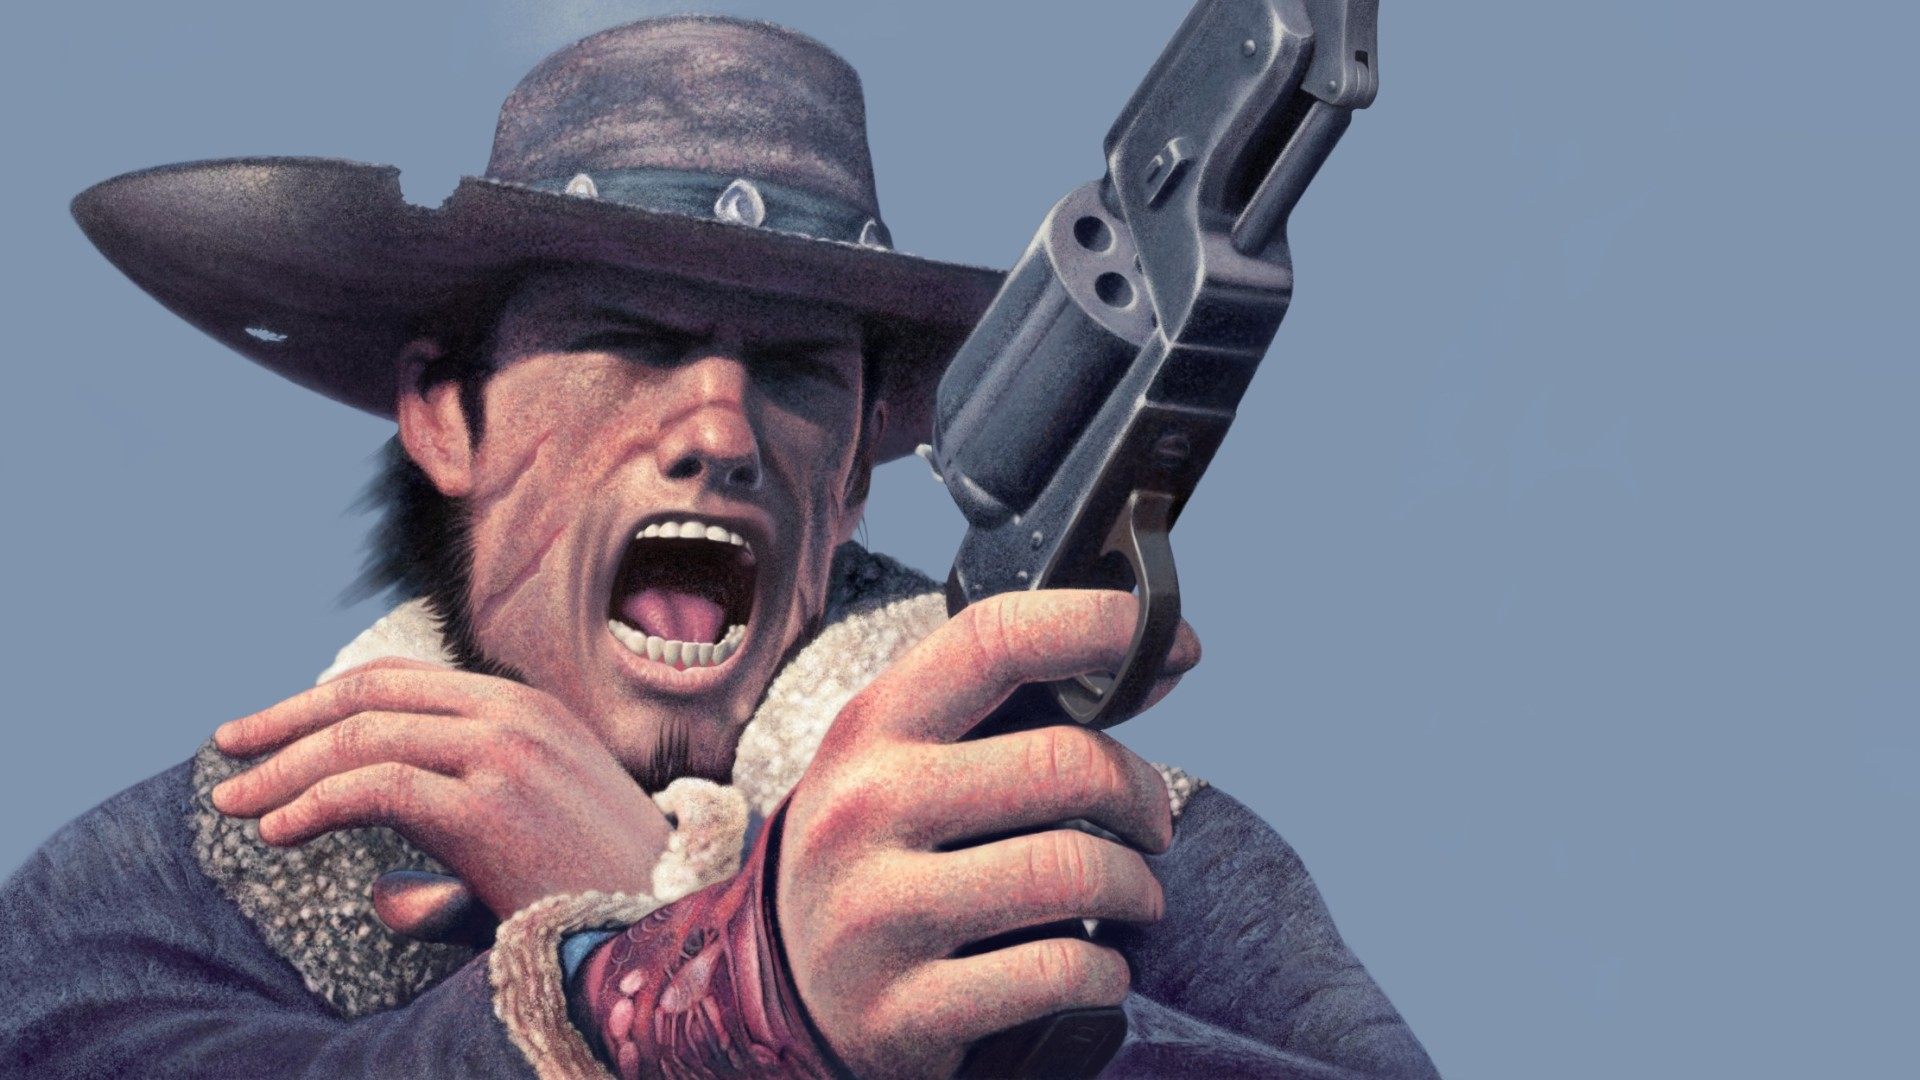 Red Dead Revolver Wallpaper Red Dead Revolver Could Come To PS4 Soon